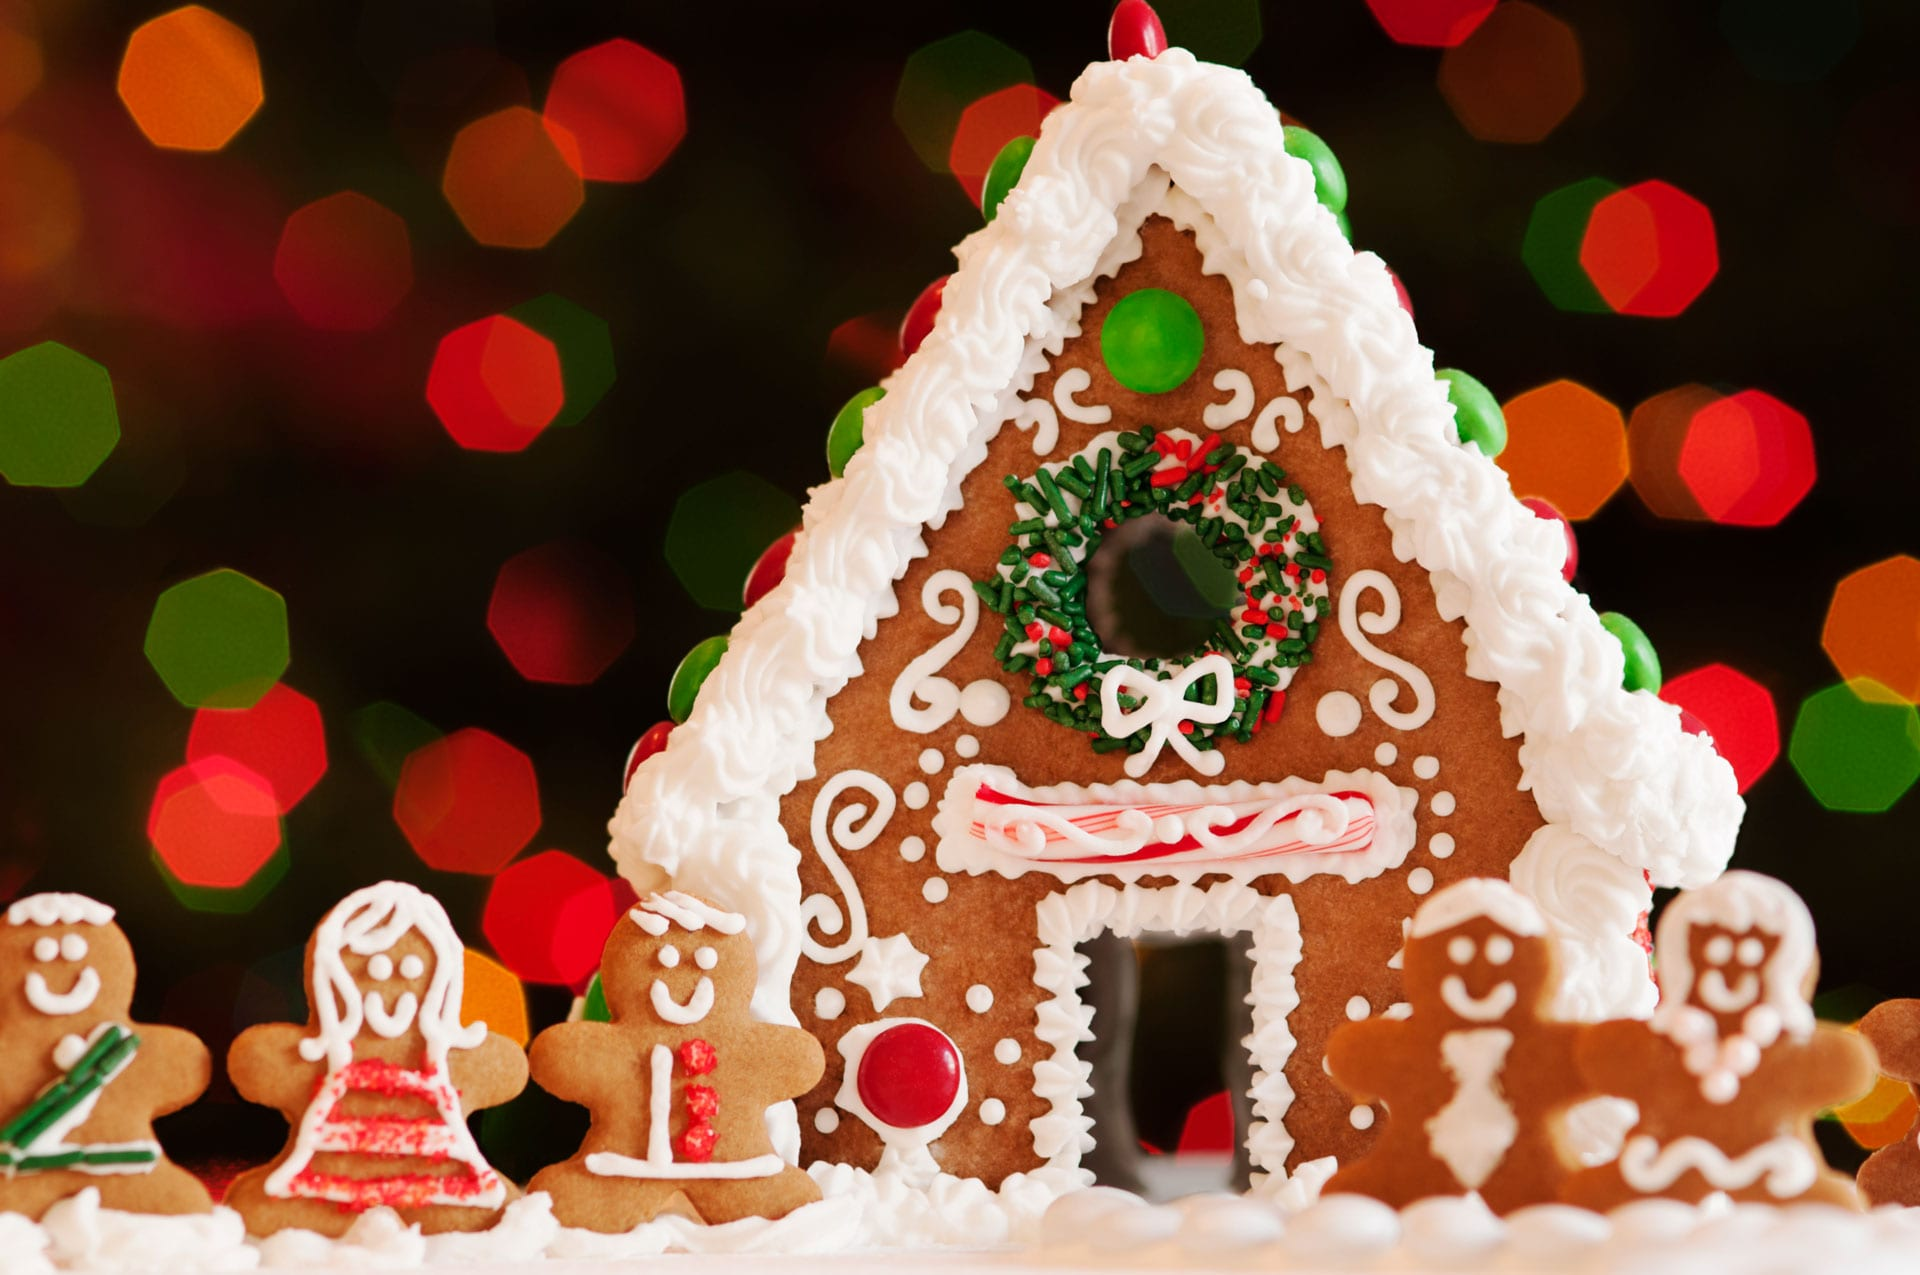 Holiday Houses: Ideas To Make The Simple Gingerbread House So Much More